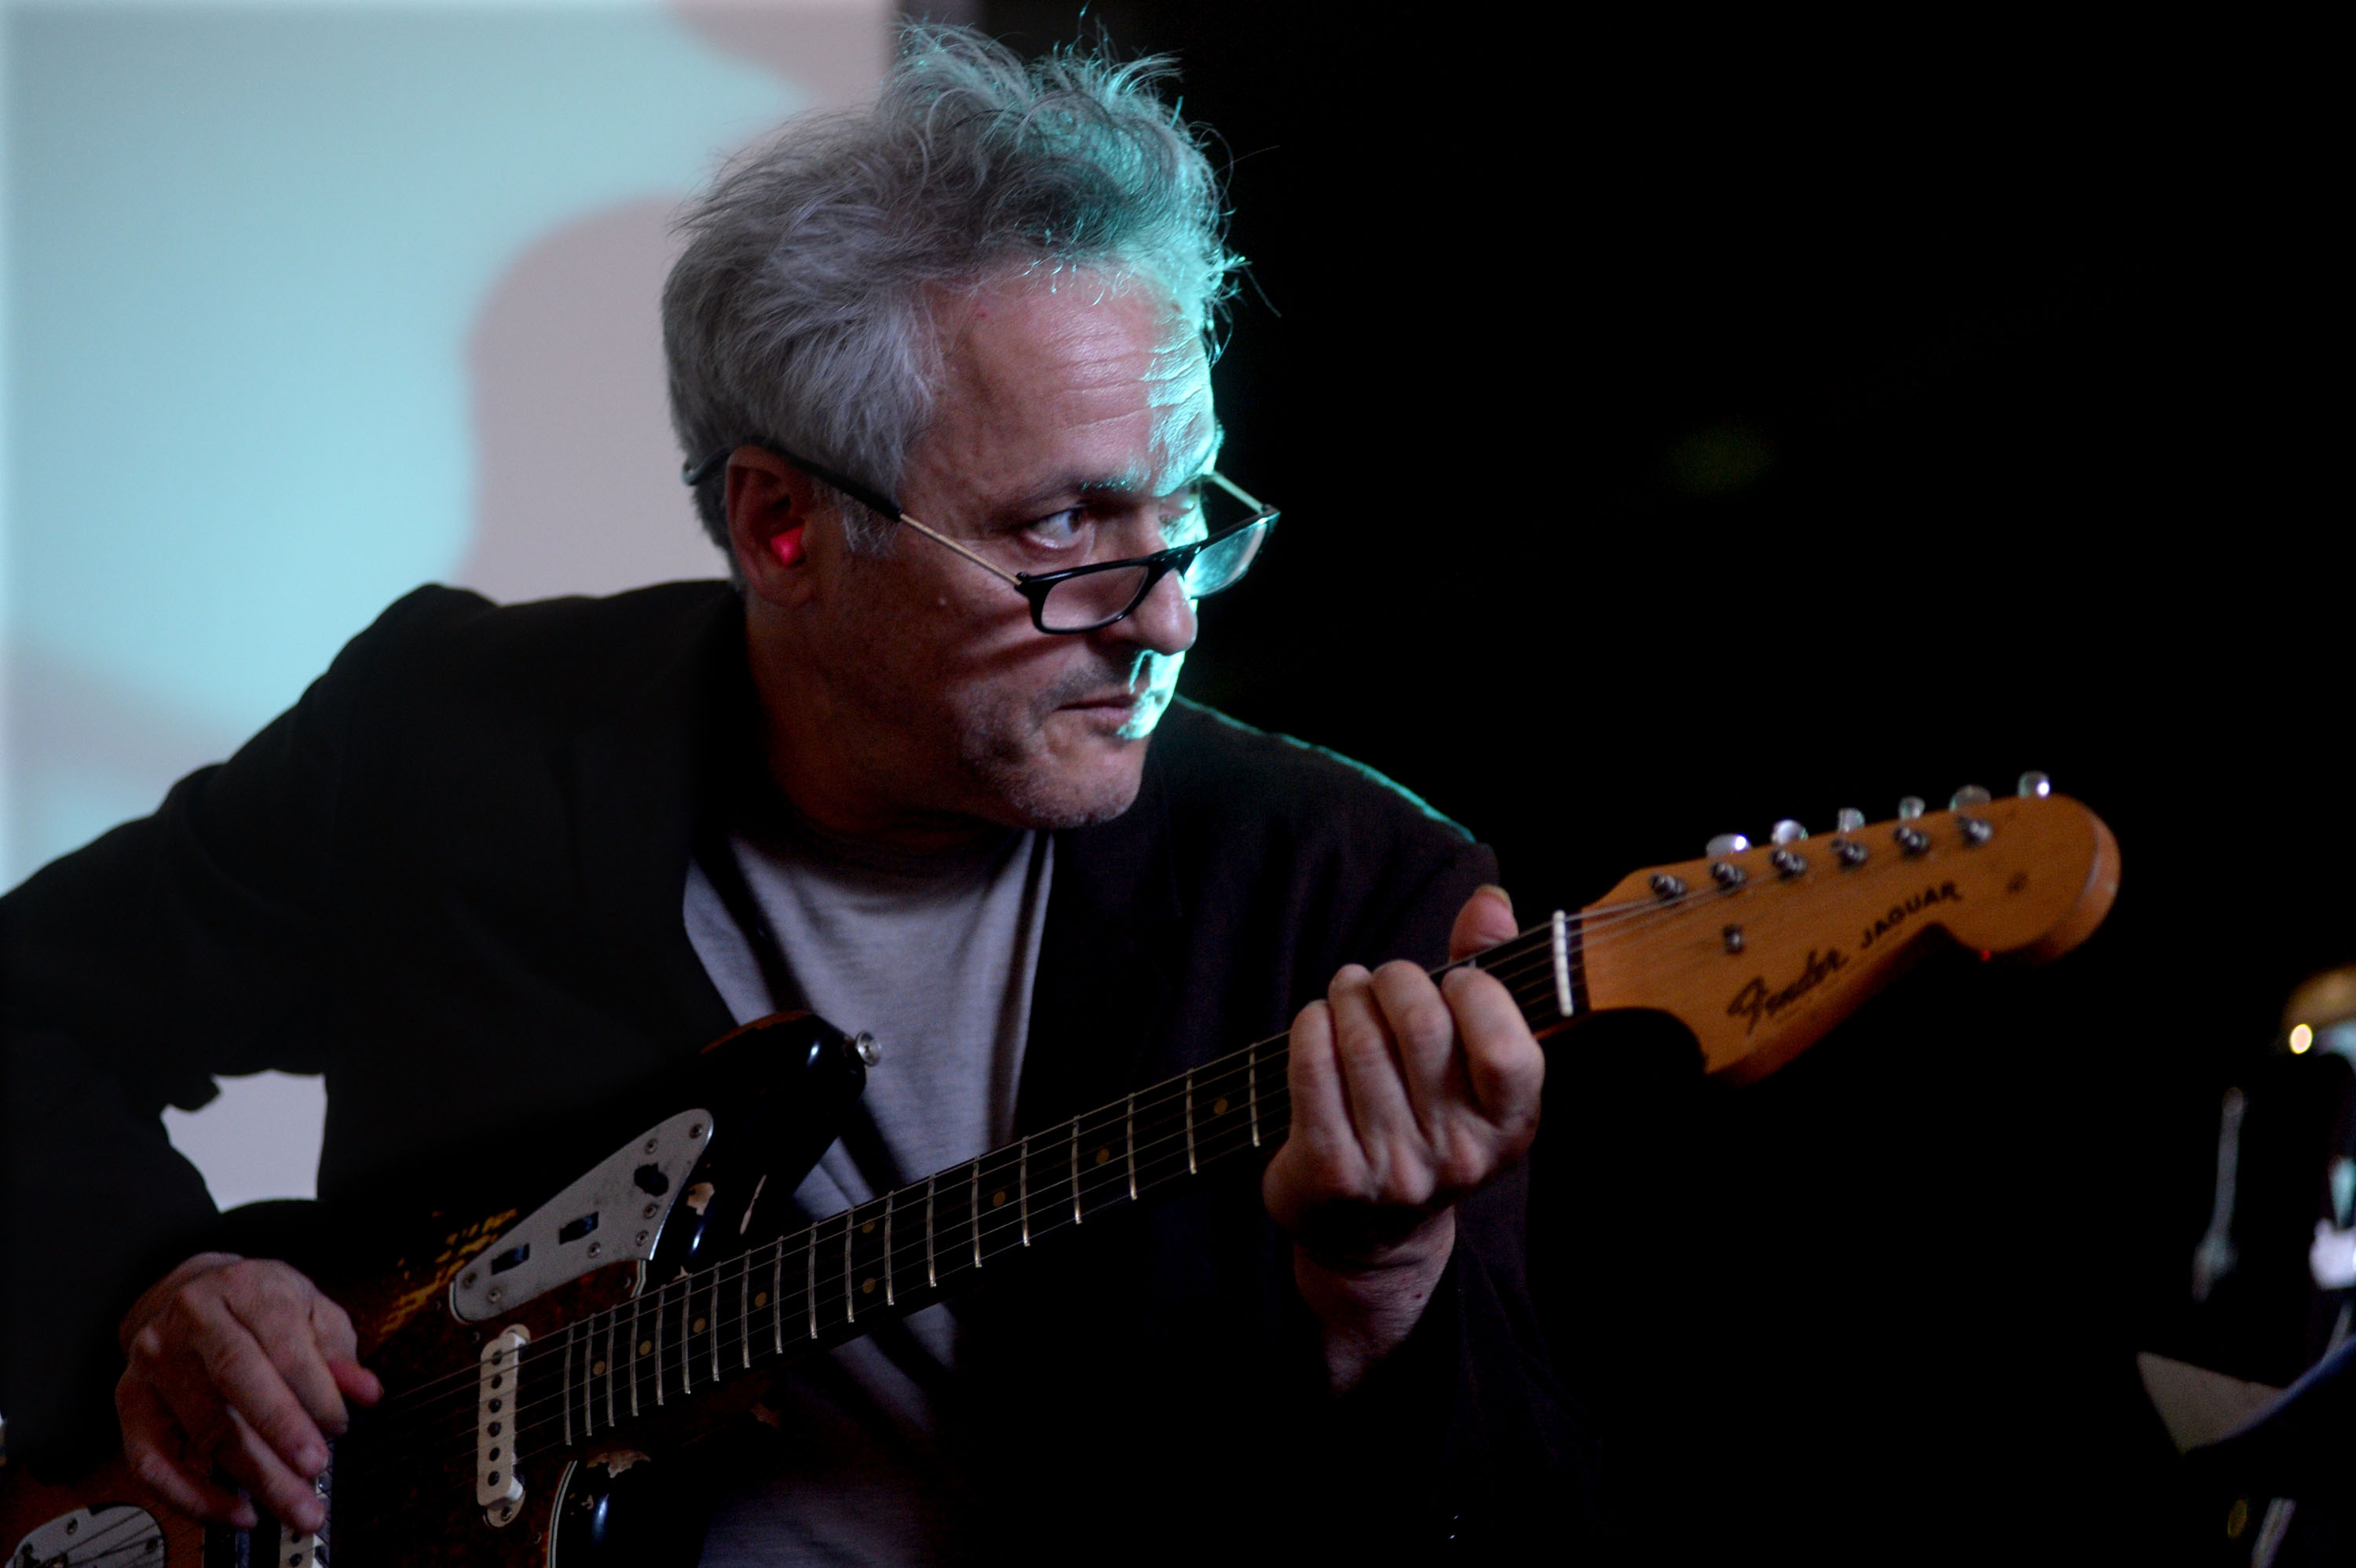 marc ribot shares copyright hypocrisy and steve albini essay marc ribot shares copyright hypocrisy and steve albini essay stereogum